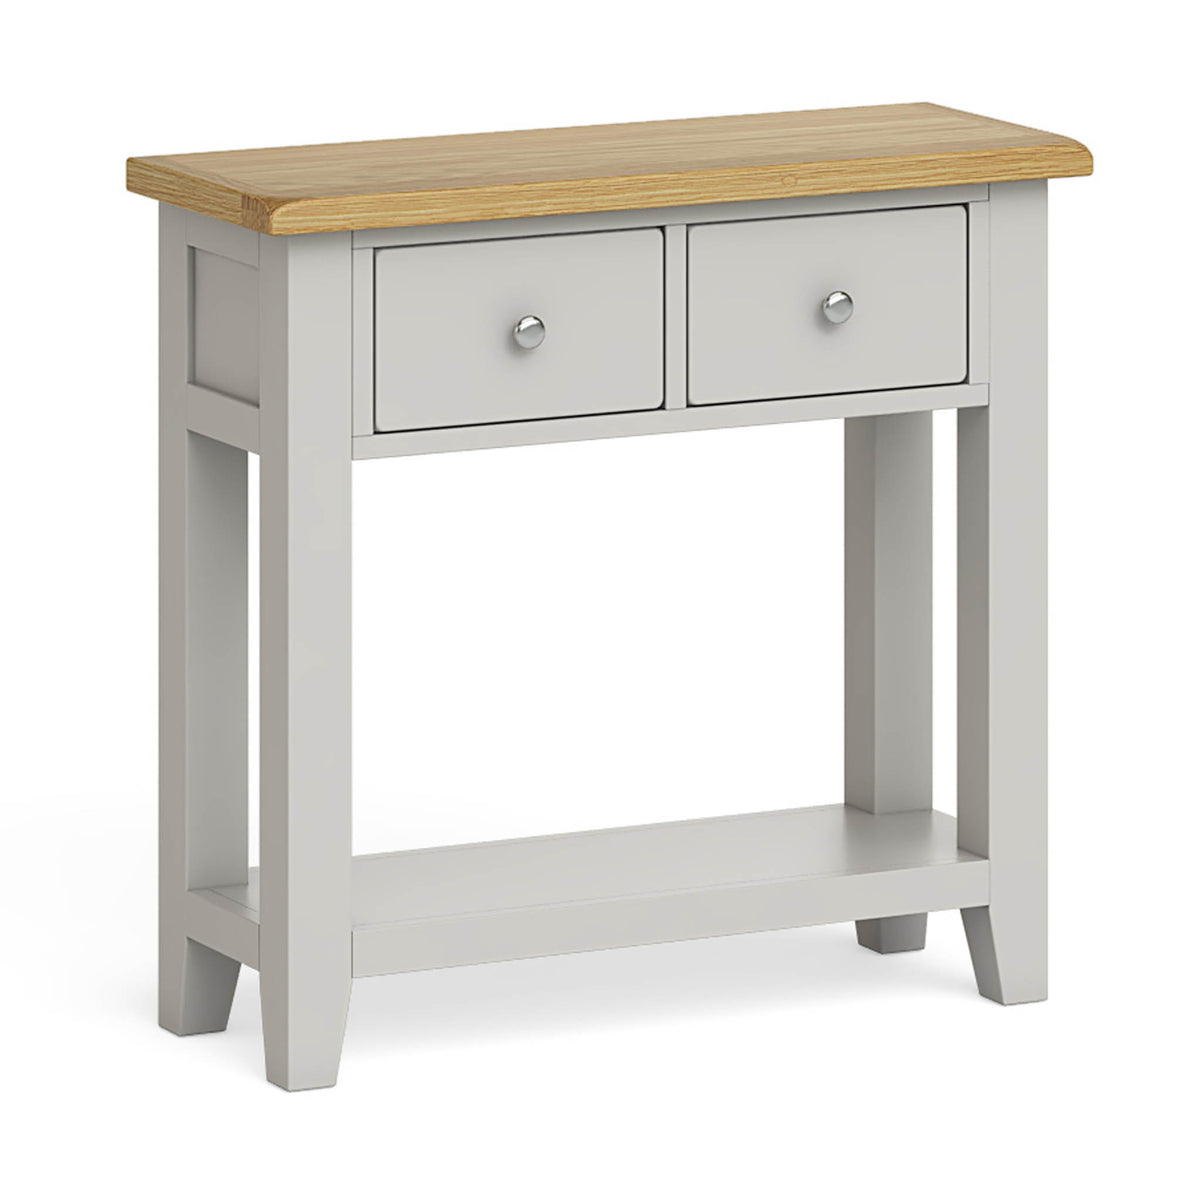 Lundy Grey Console Table by Roseland Furniture